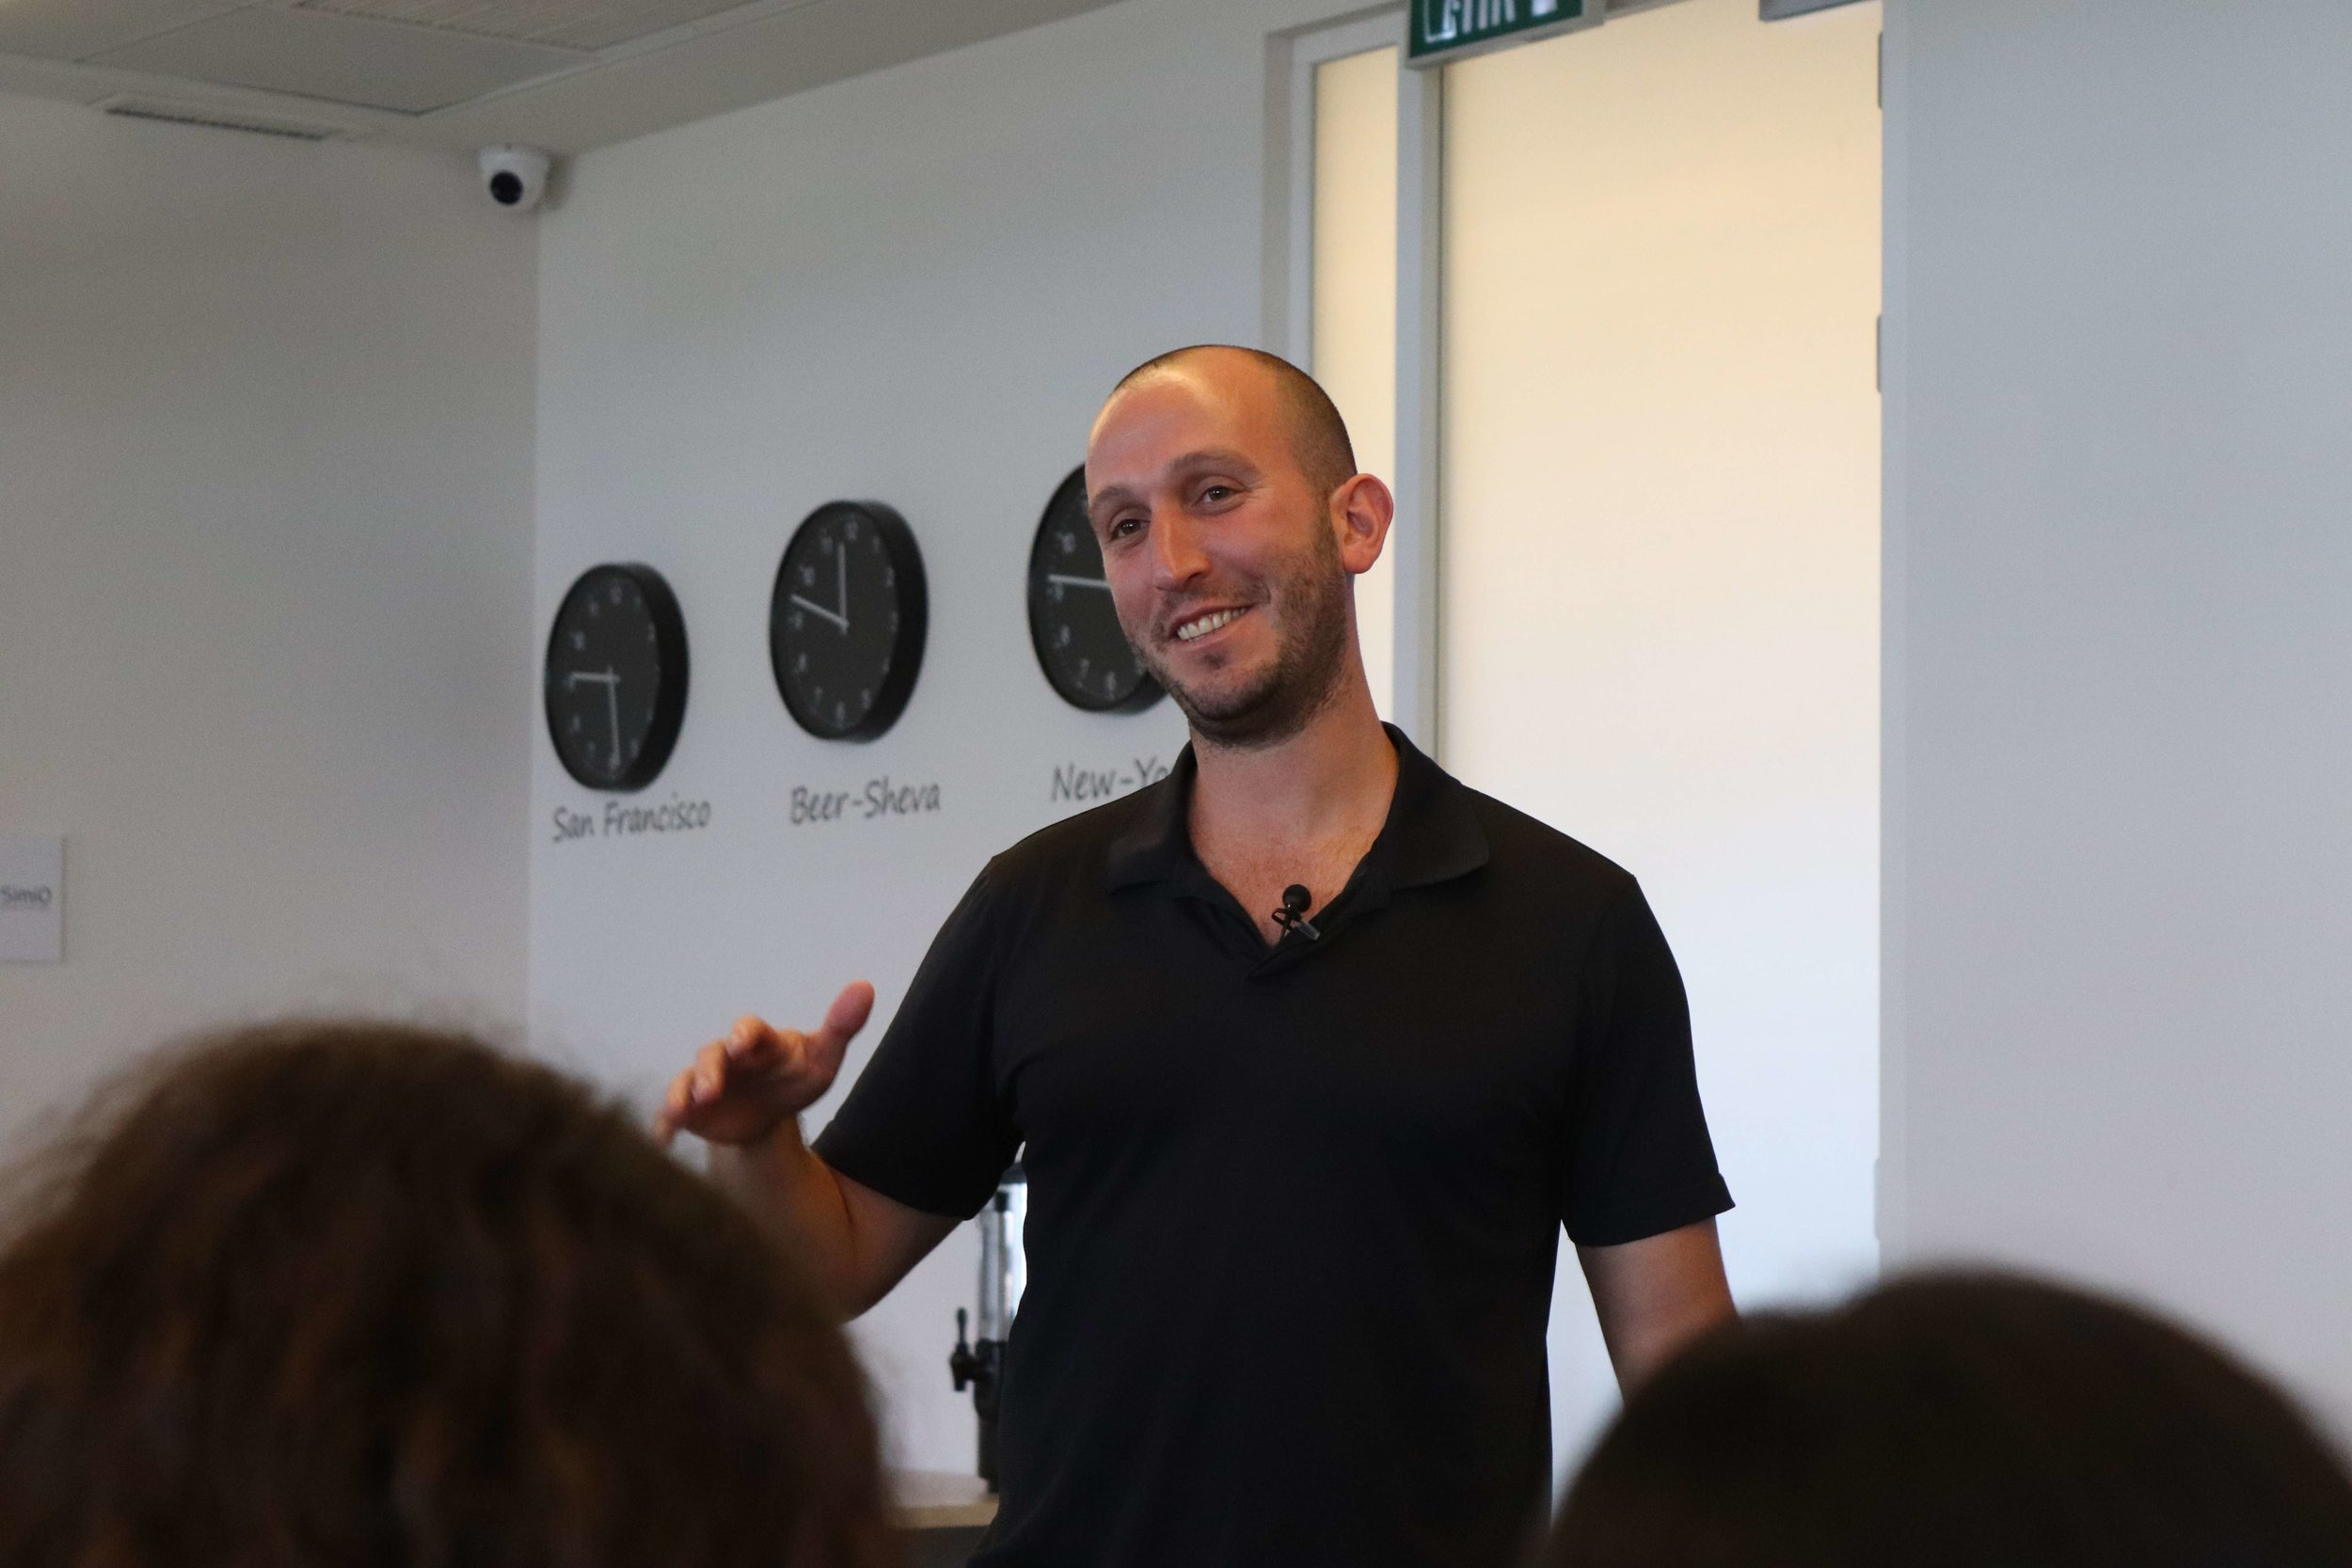 Yotam Tzuker is CEO of Tech 7, an innovation company in The Negev Desert area of Israel.